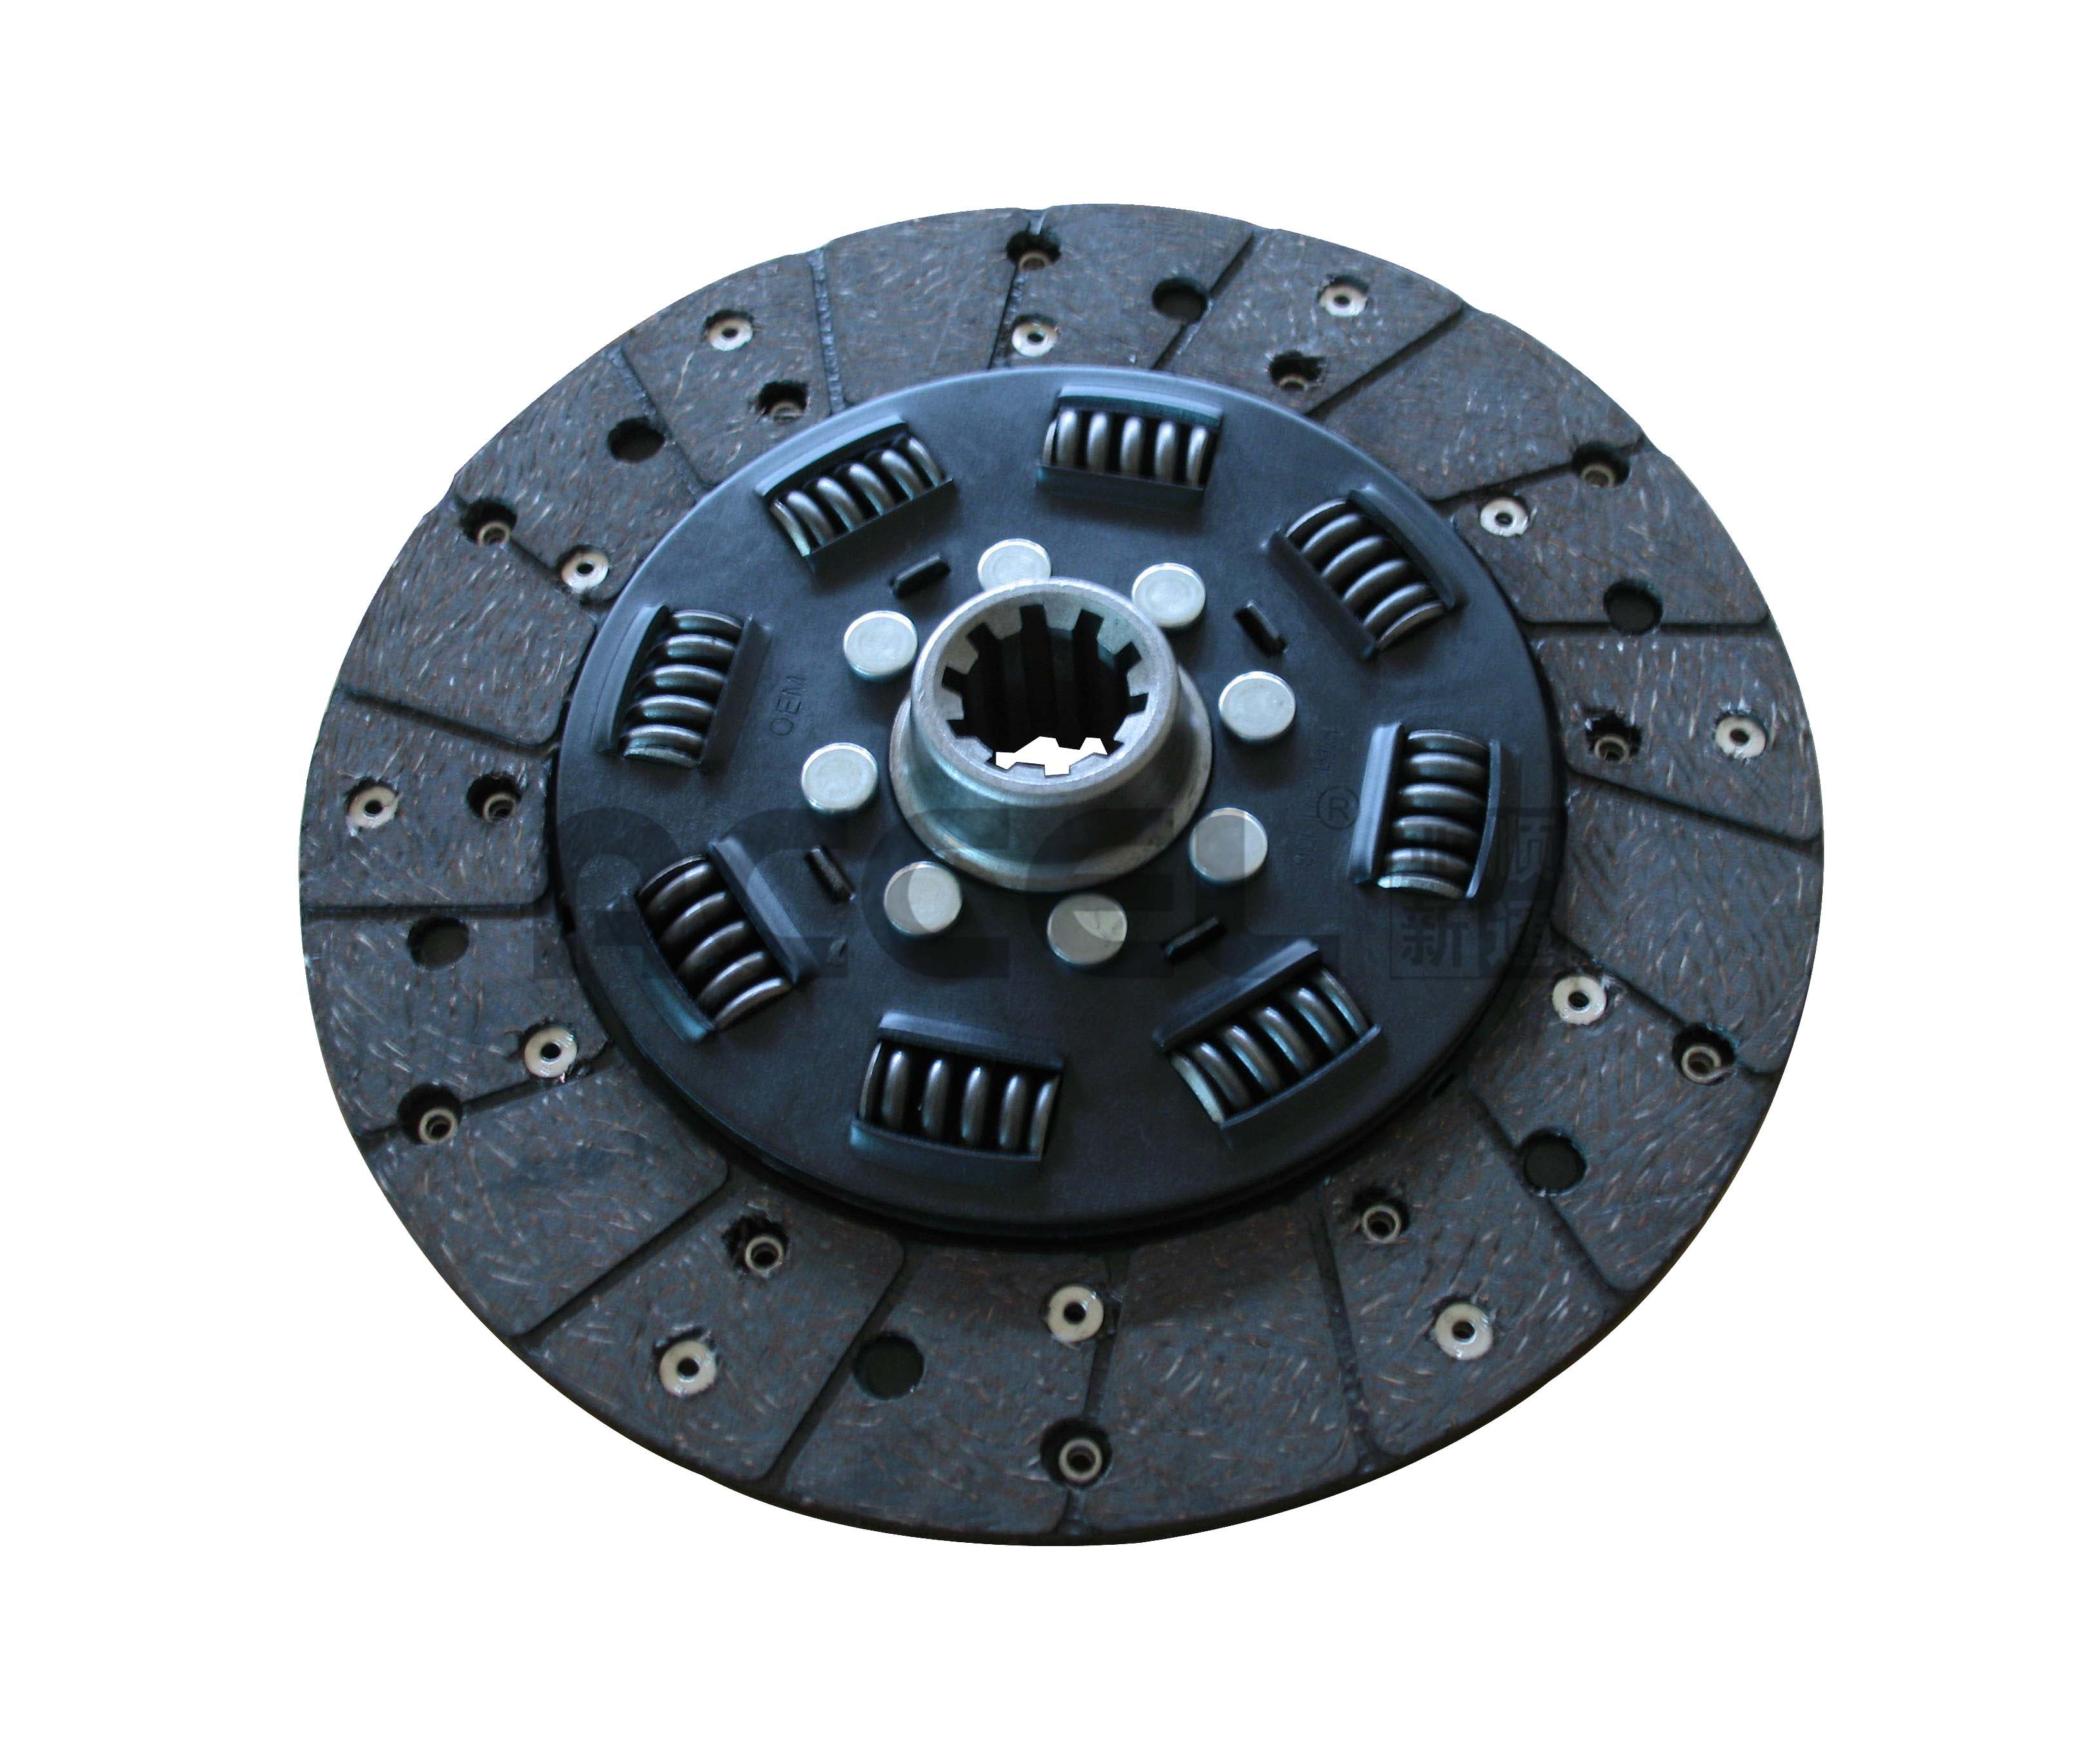 Clutch Disc/OE:001 250 0603/250*165*10*32/ABZ-020/MERCEDES BENZ/CL0695/1861 291 136